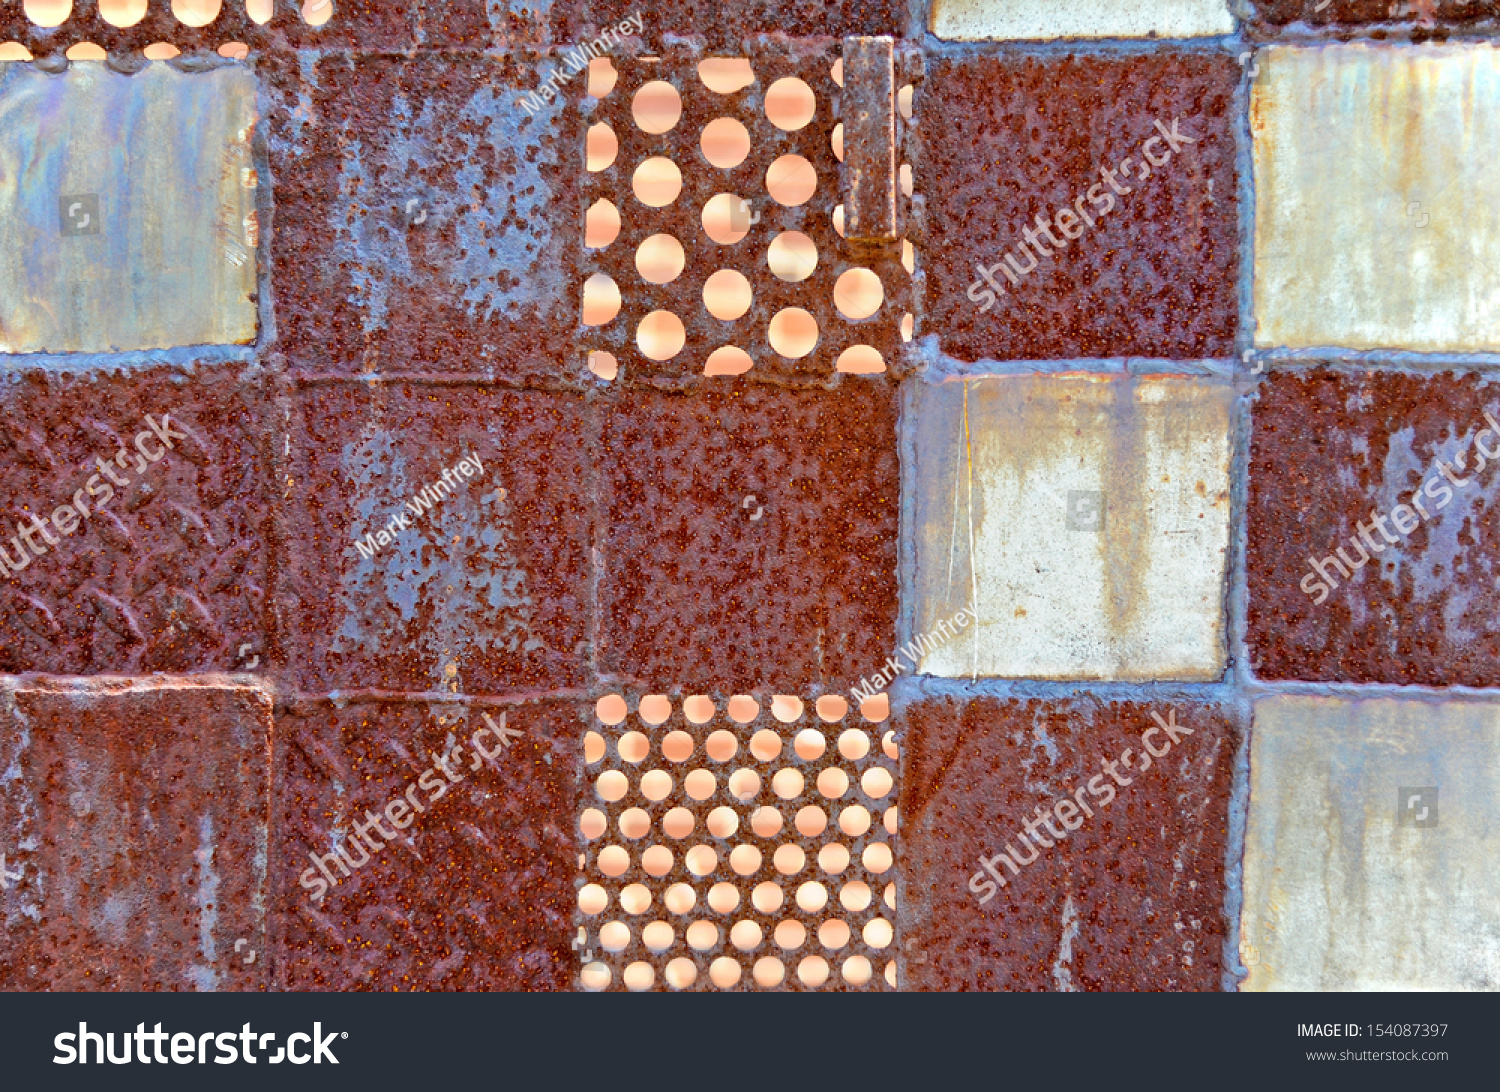 Abstract Background of Rusted Metal Squares